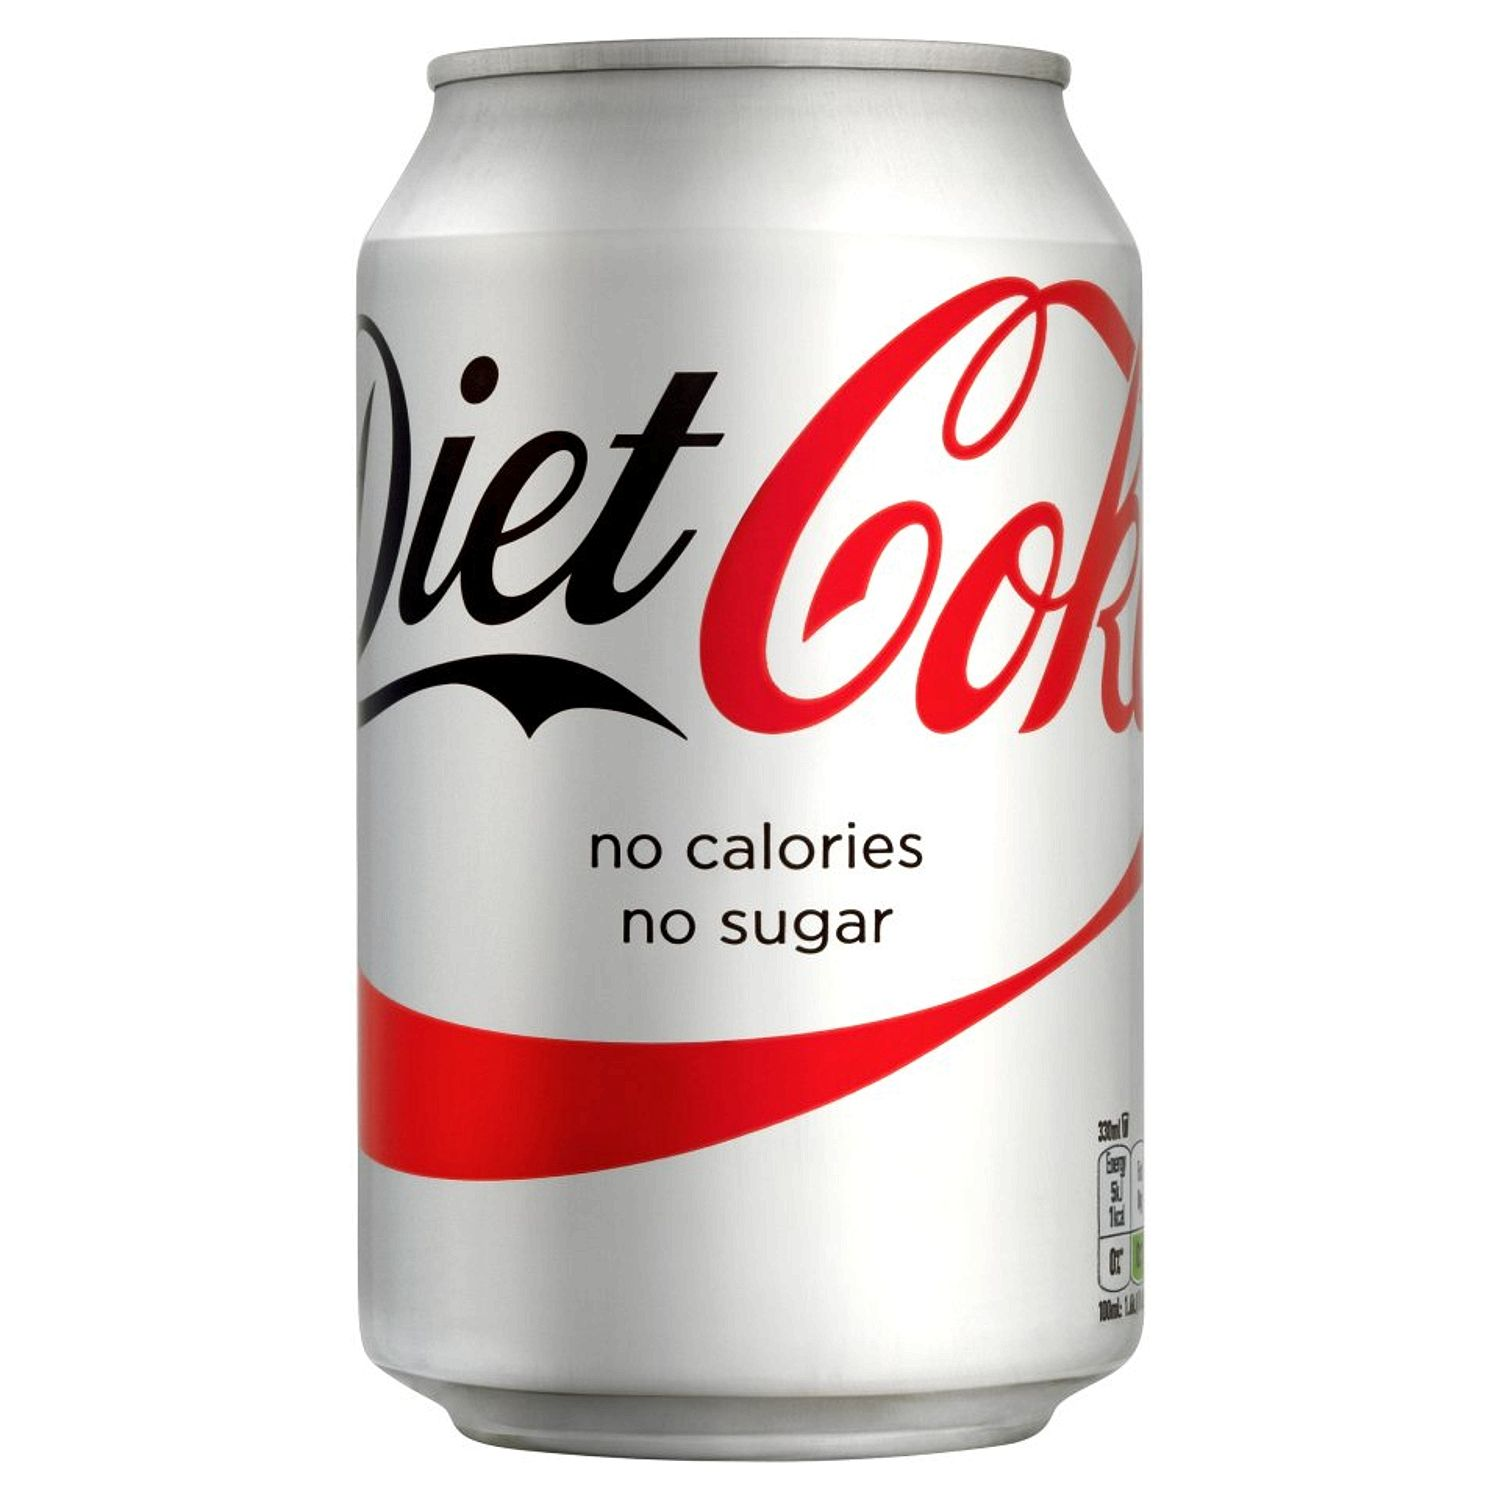 I think I average around six.  I must be invincible.  Someone call Marvel and see if they are looking for a new Super Hero.  Just call me Diet Coke Man.